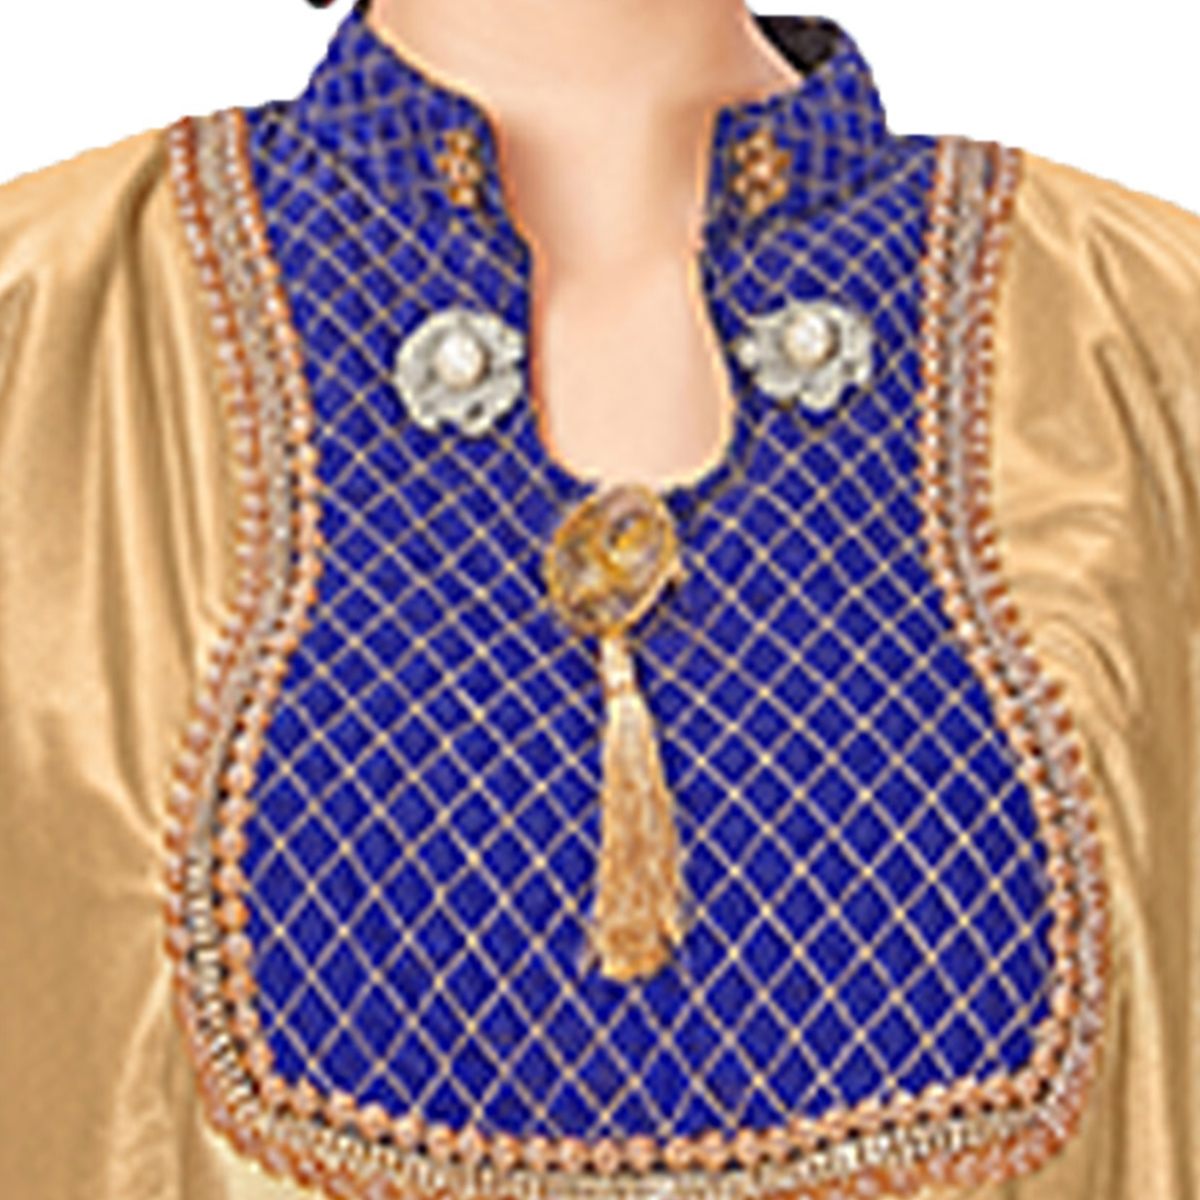 Gorgeous Golden-Navy Blue Colored Printed Jacquard Silk Blouse